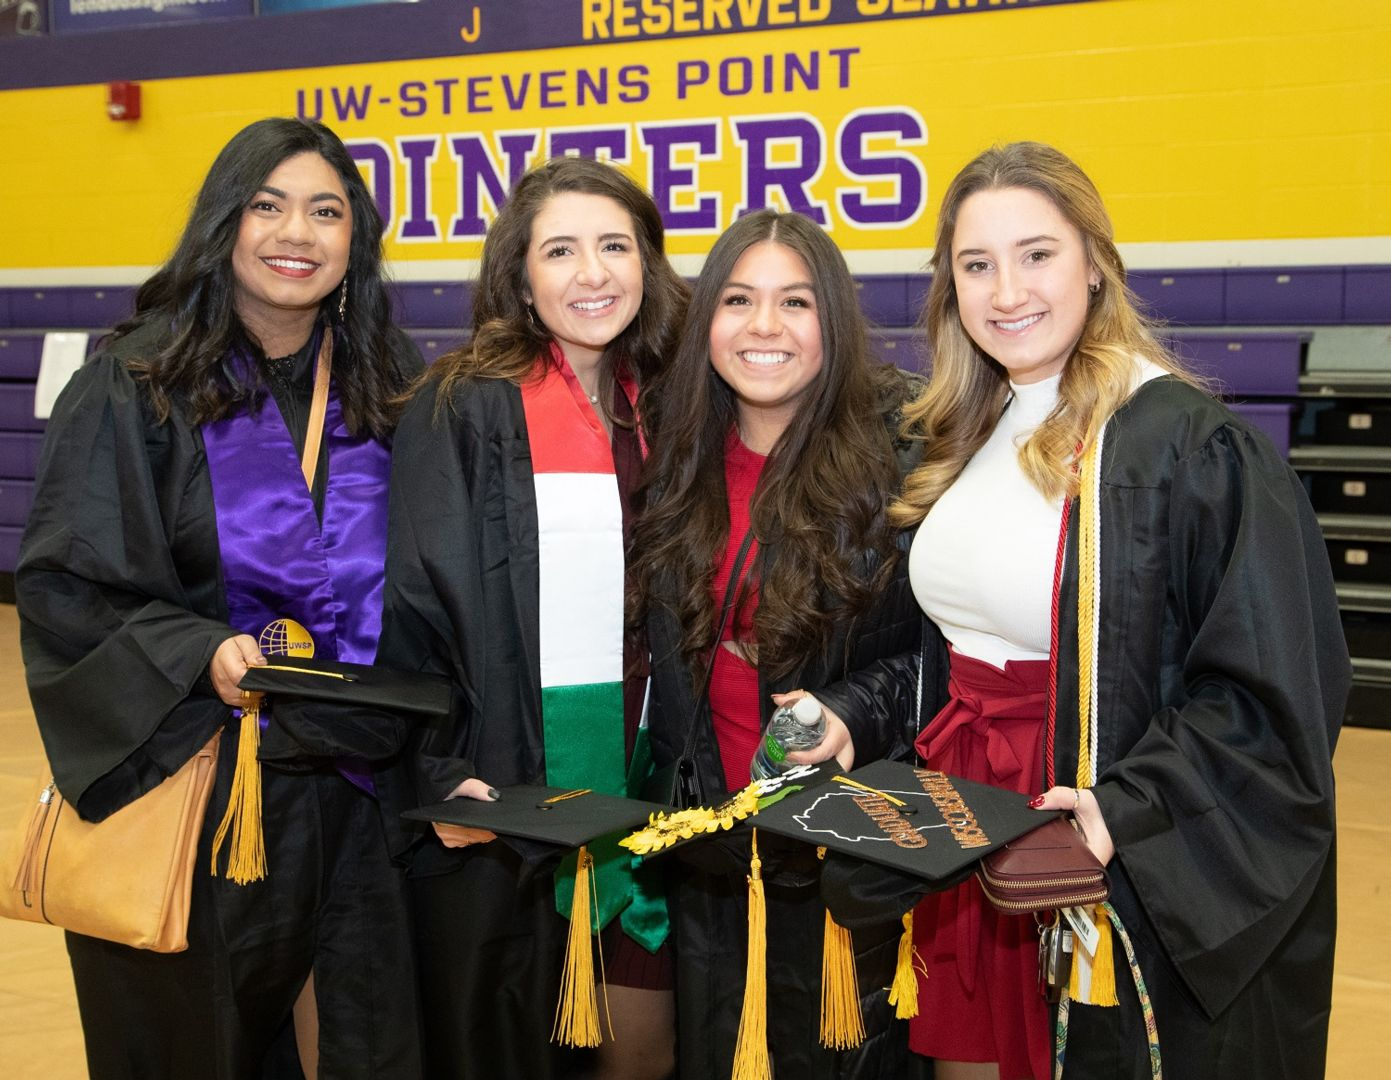 UW-Stevens Point ranked among top 10 Midwest public universities